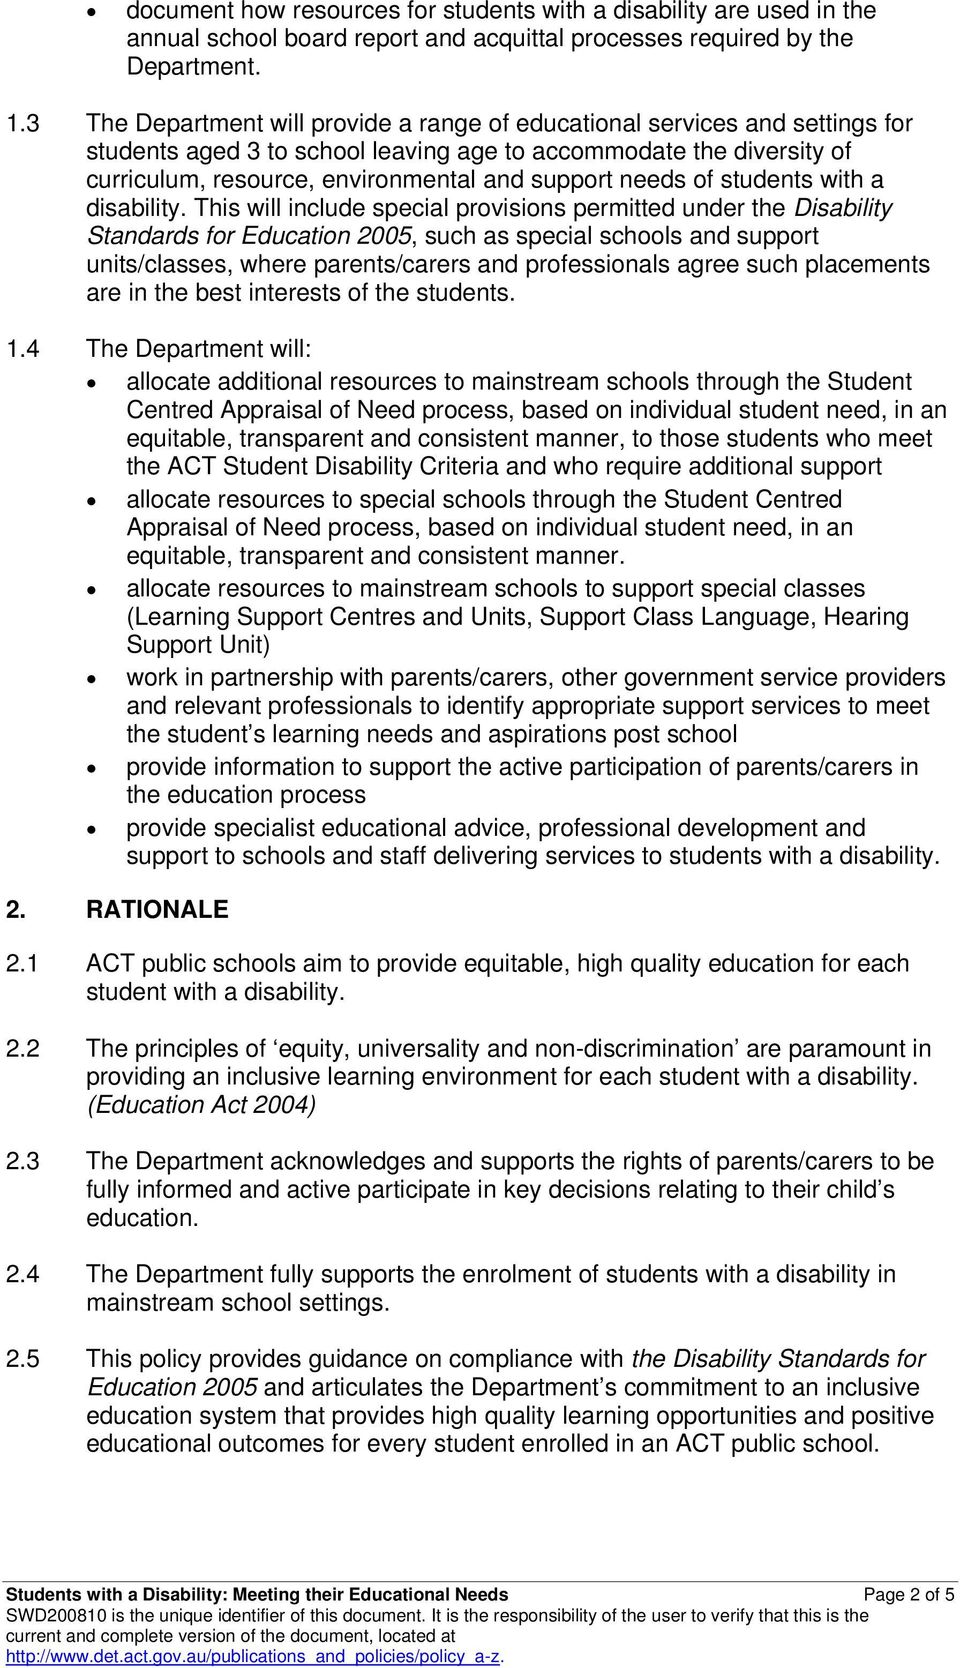 needs of students with a disability.